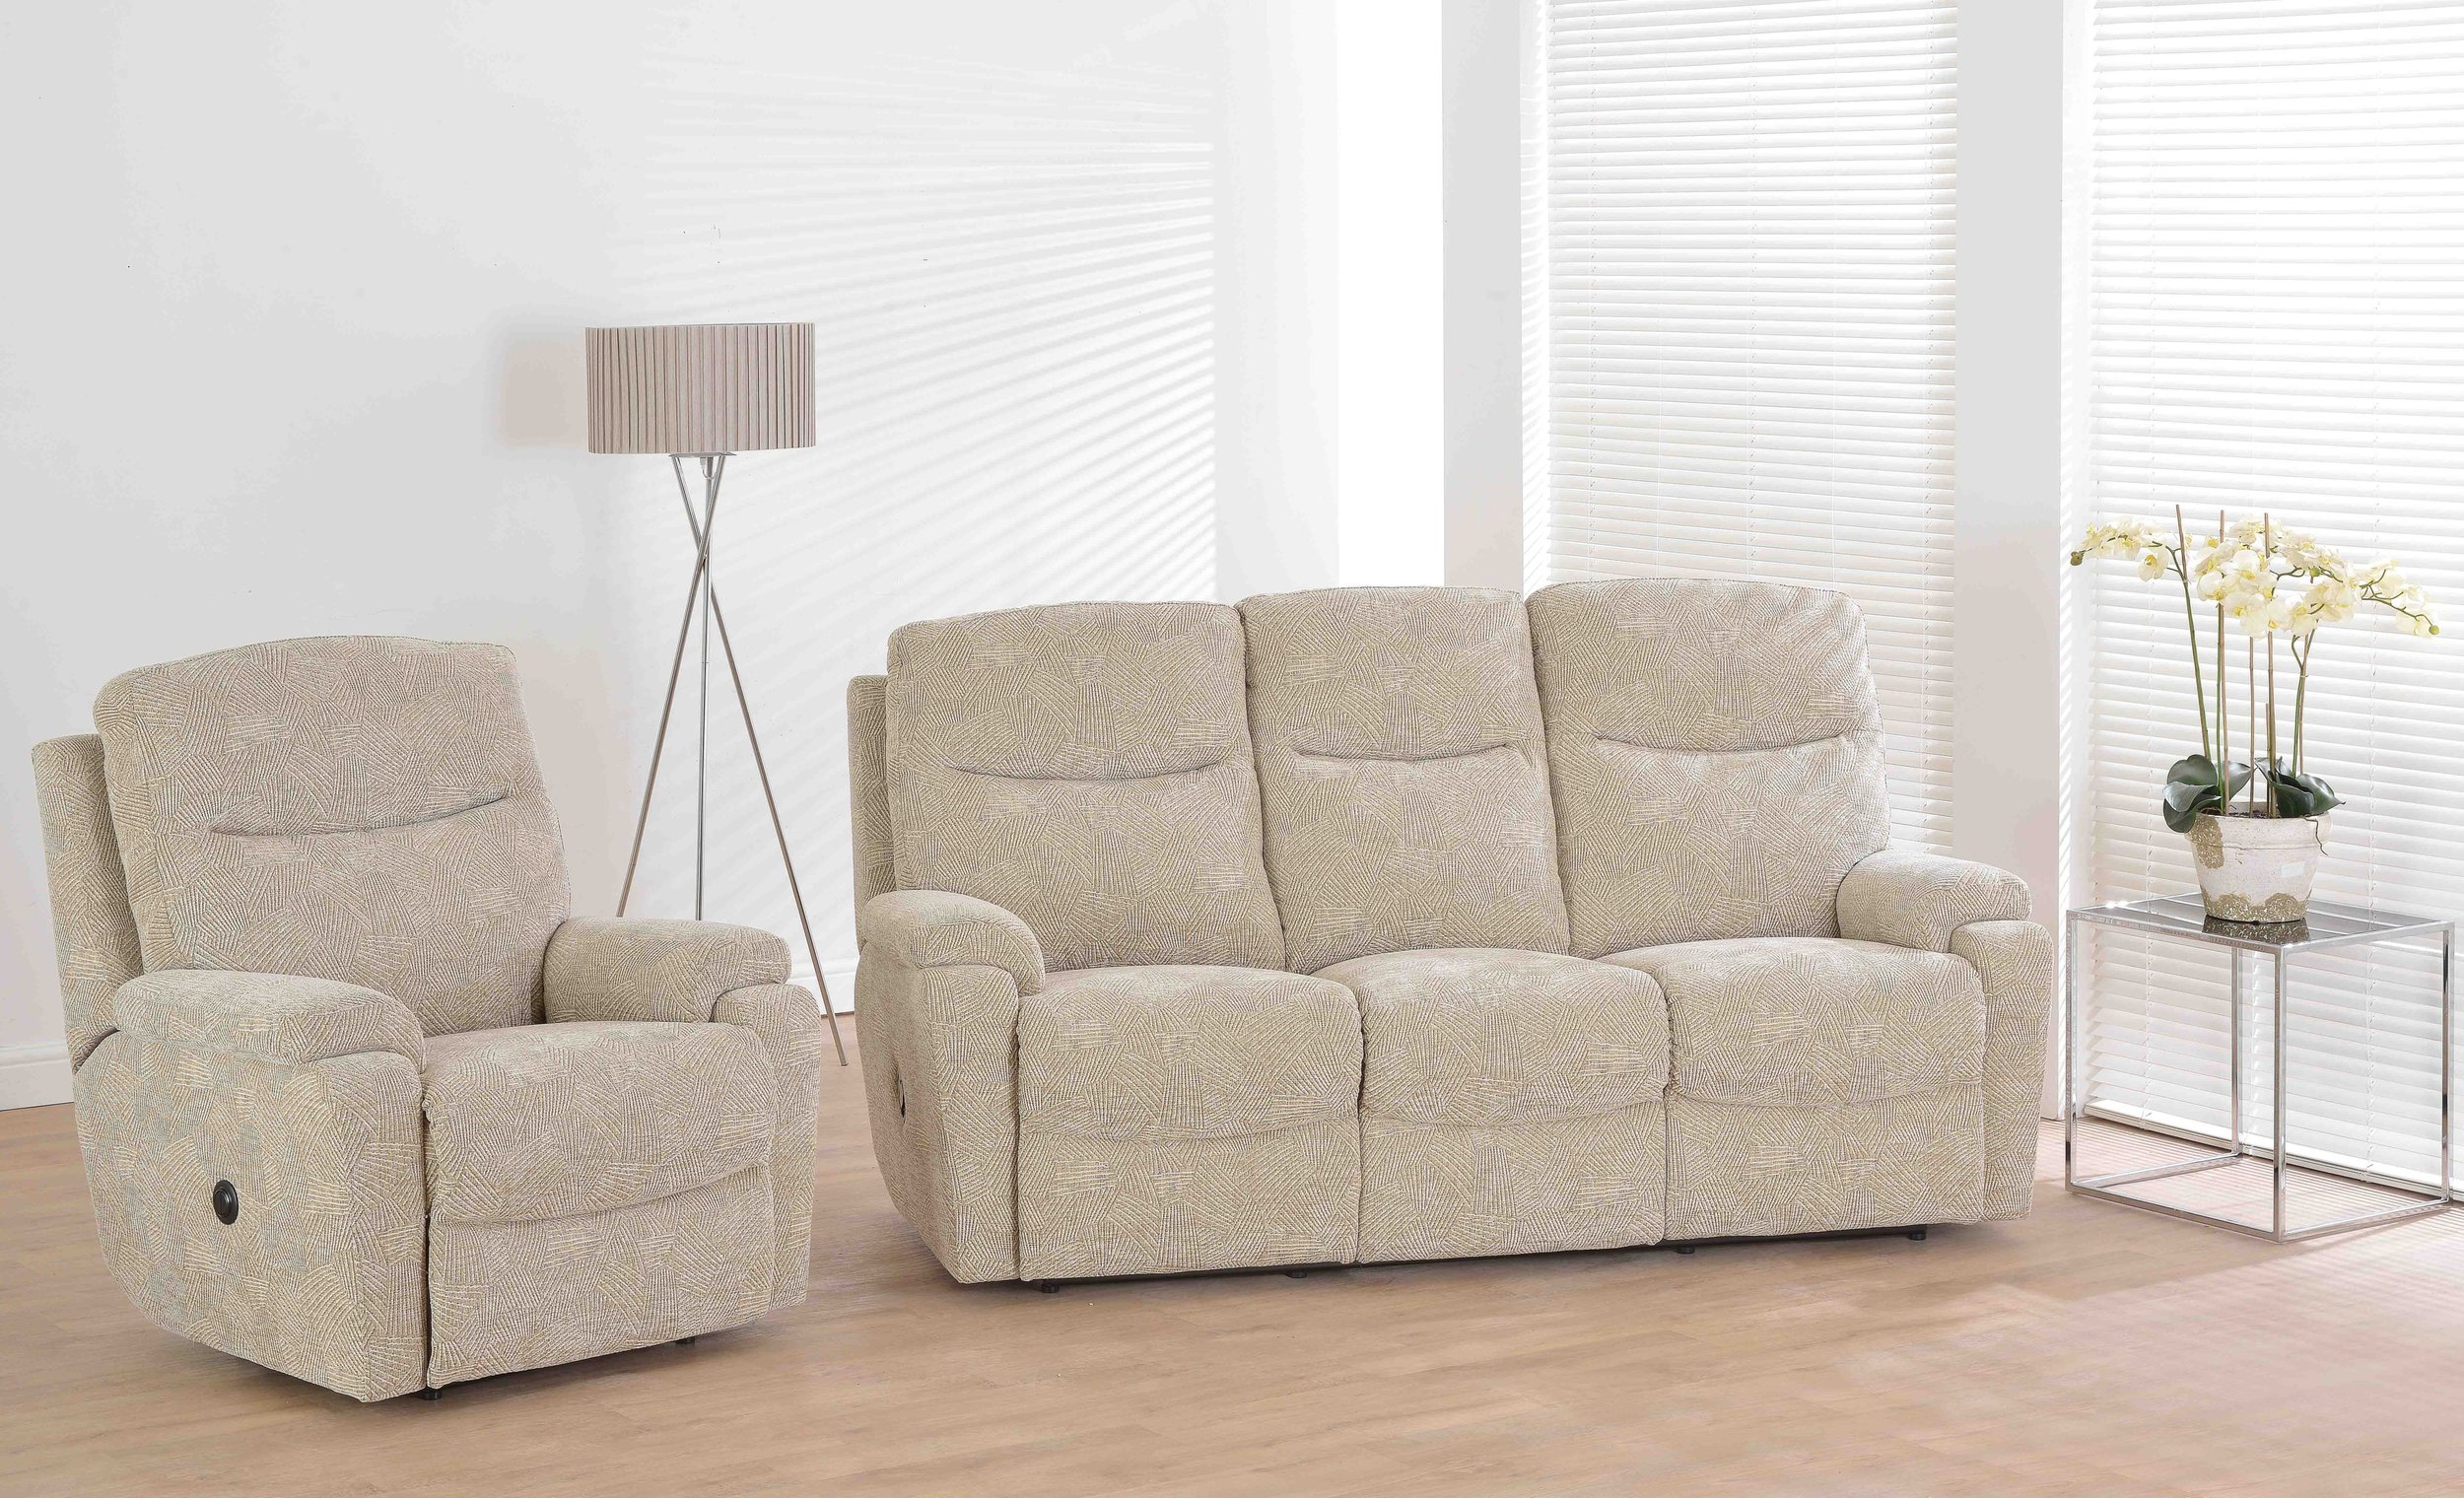 Townley sofa and chairs.jpg